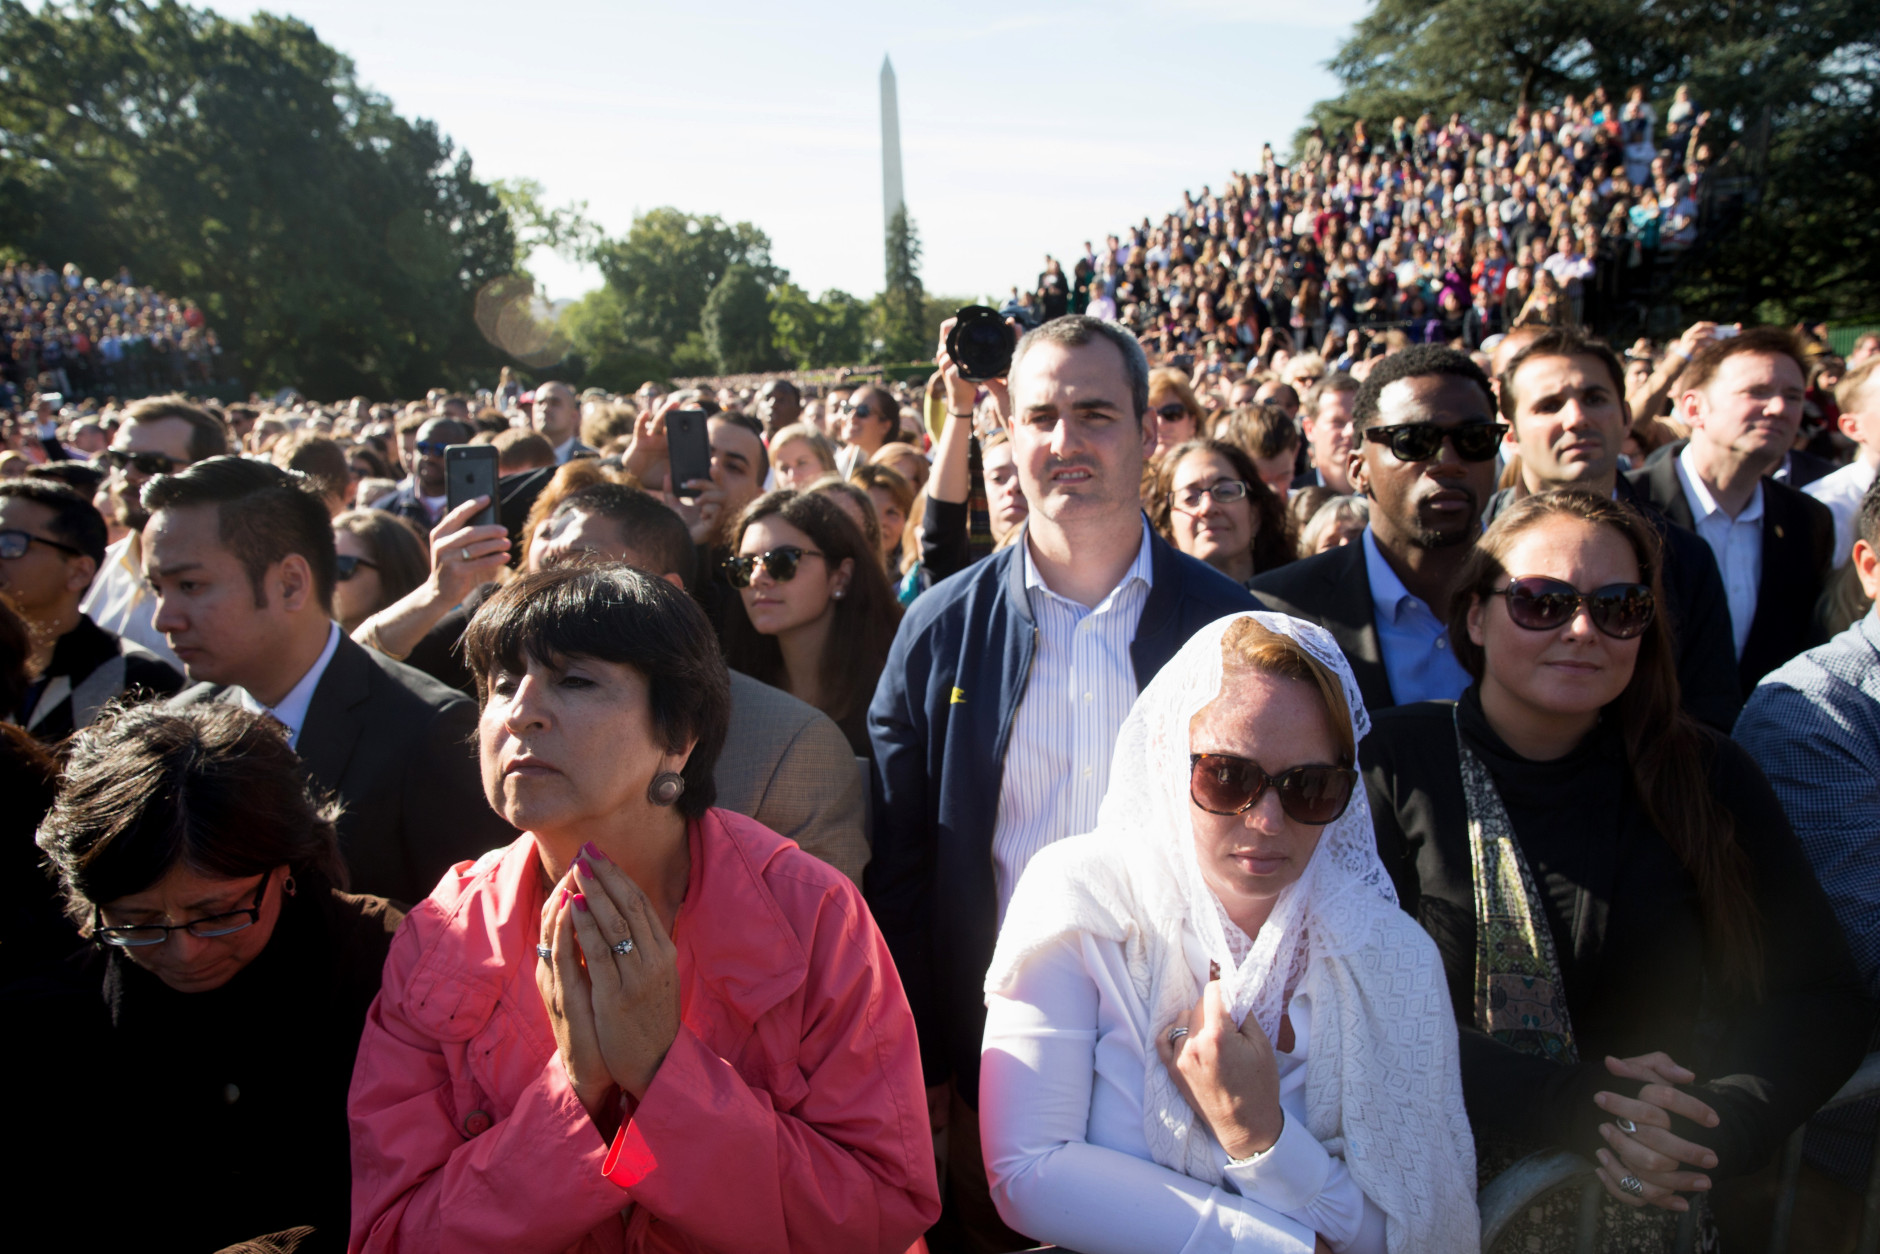 Guests listen as President Barack Obama and Pope Francis speak during a state arrival ceremony for the pope, Wednesday, Sept. 23, 2015, on the South Lawn of the White House in Washington. (AP Photo/Andrew Harnik)